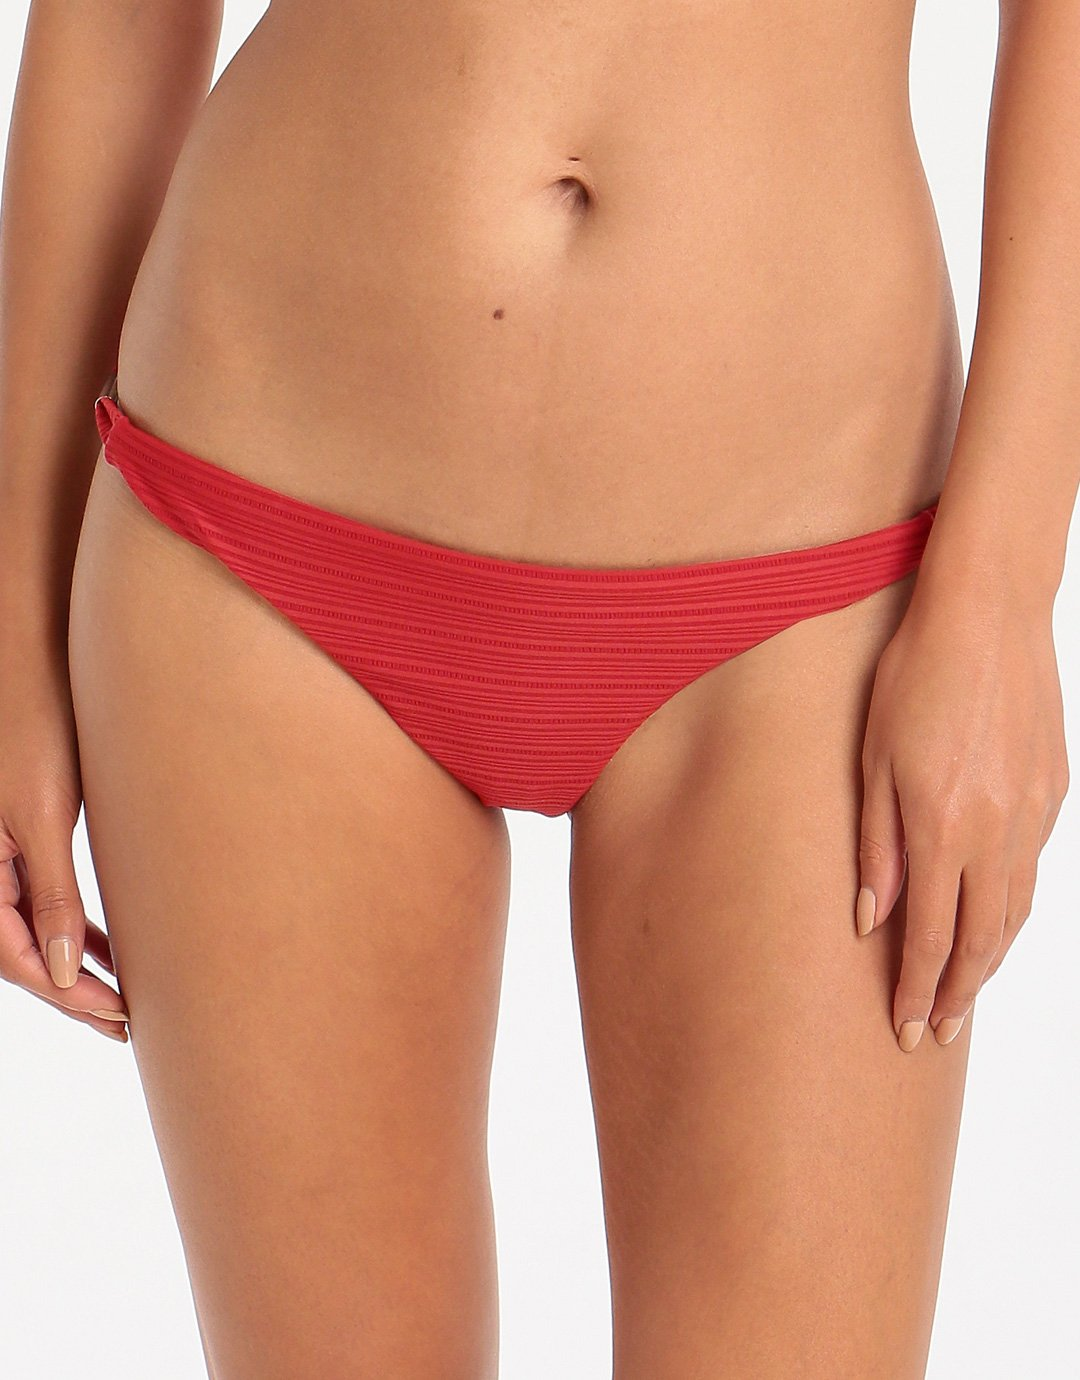 Jets Disposition Mini Pant - Ruby